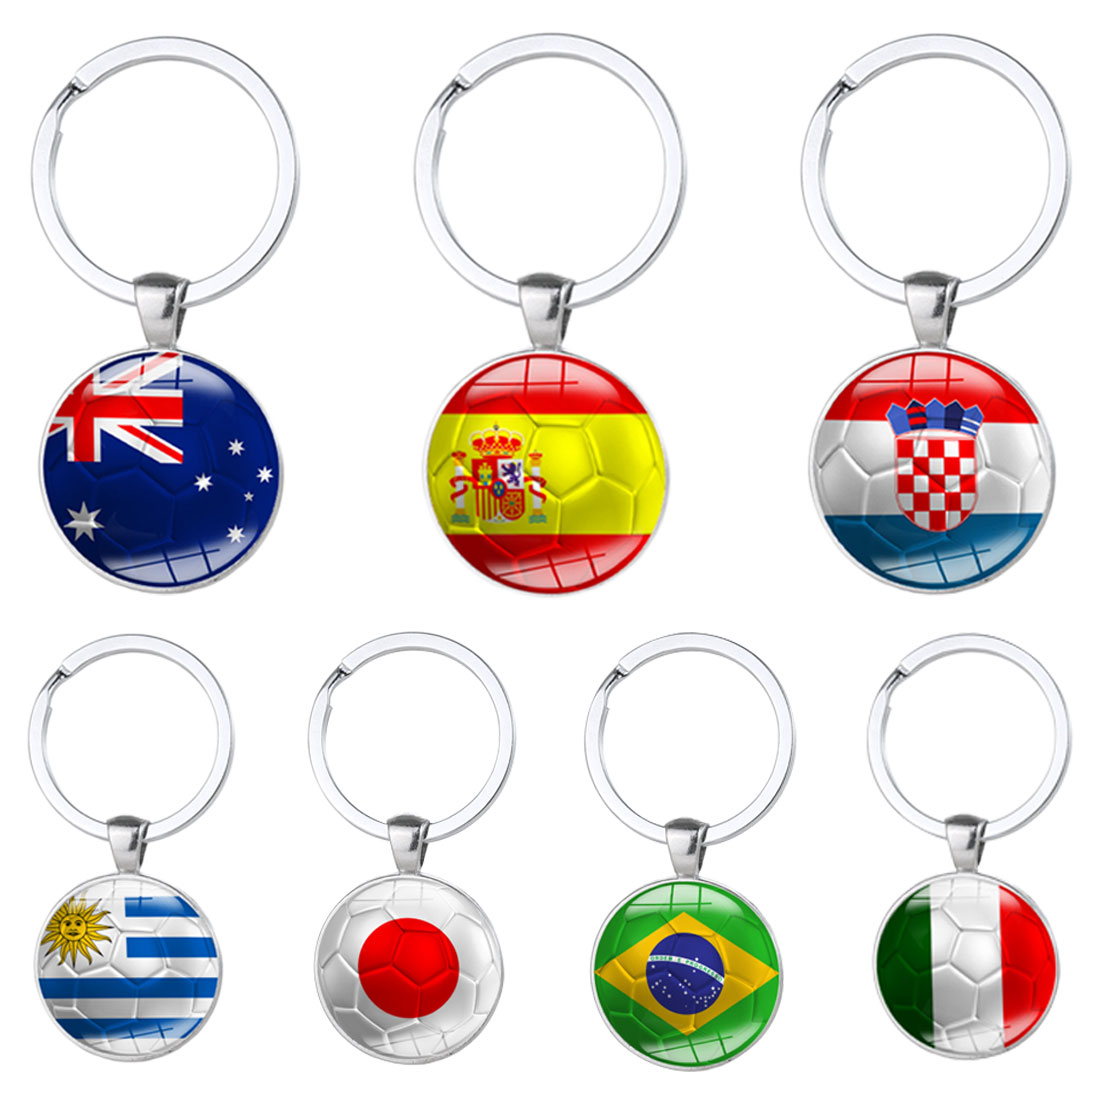 Football Keychains Key ring 32 Countries Peru Sweden Tunisia Senegal Soccer Key Chains Souvenir